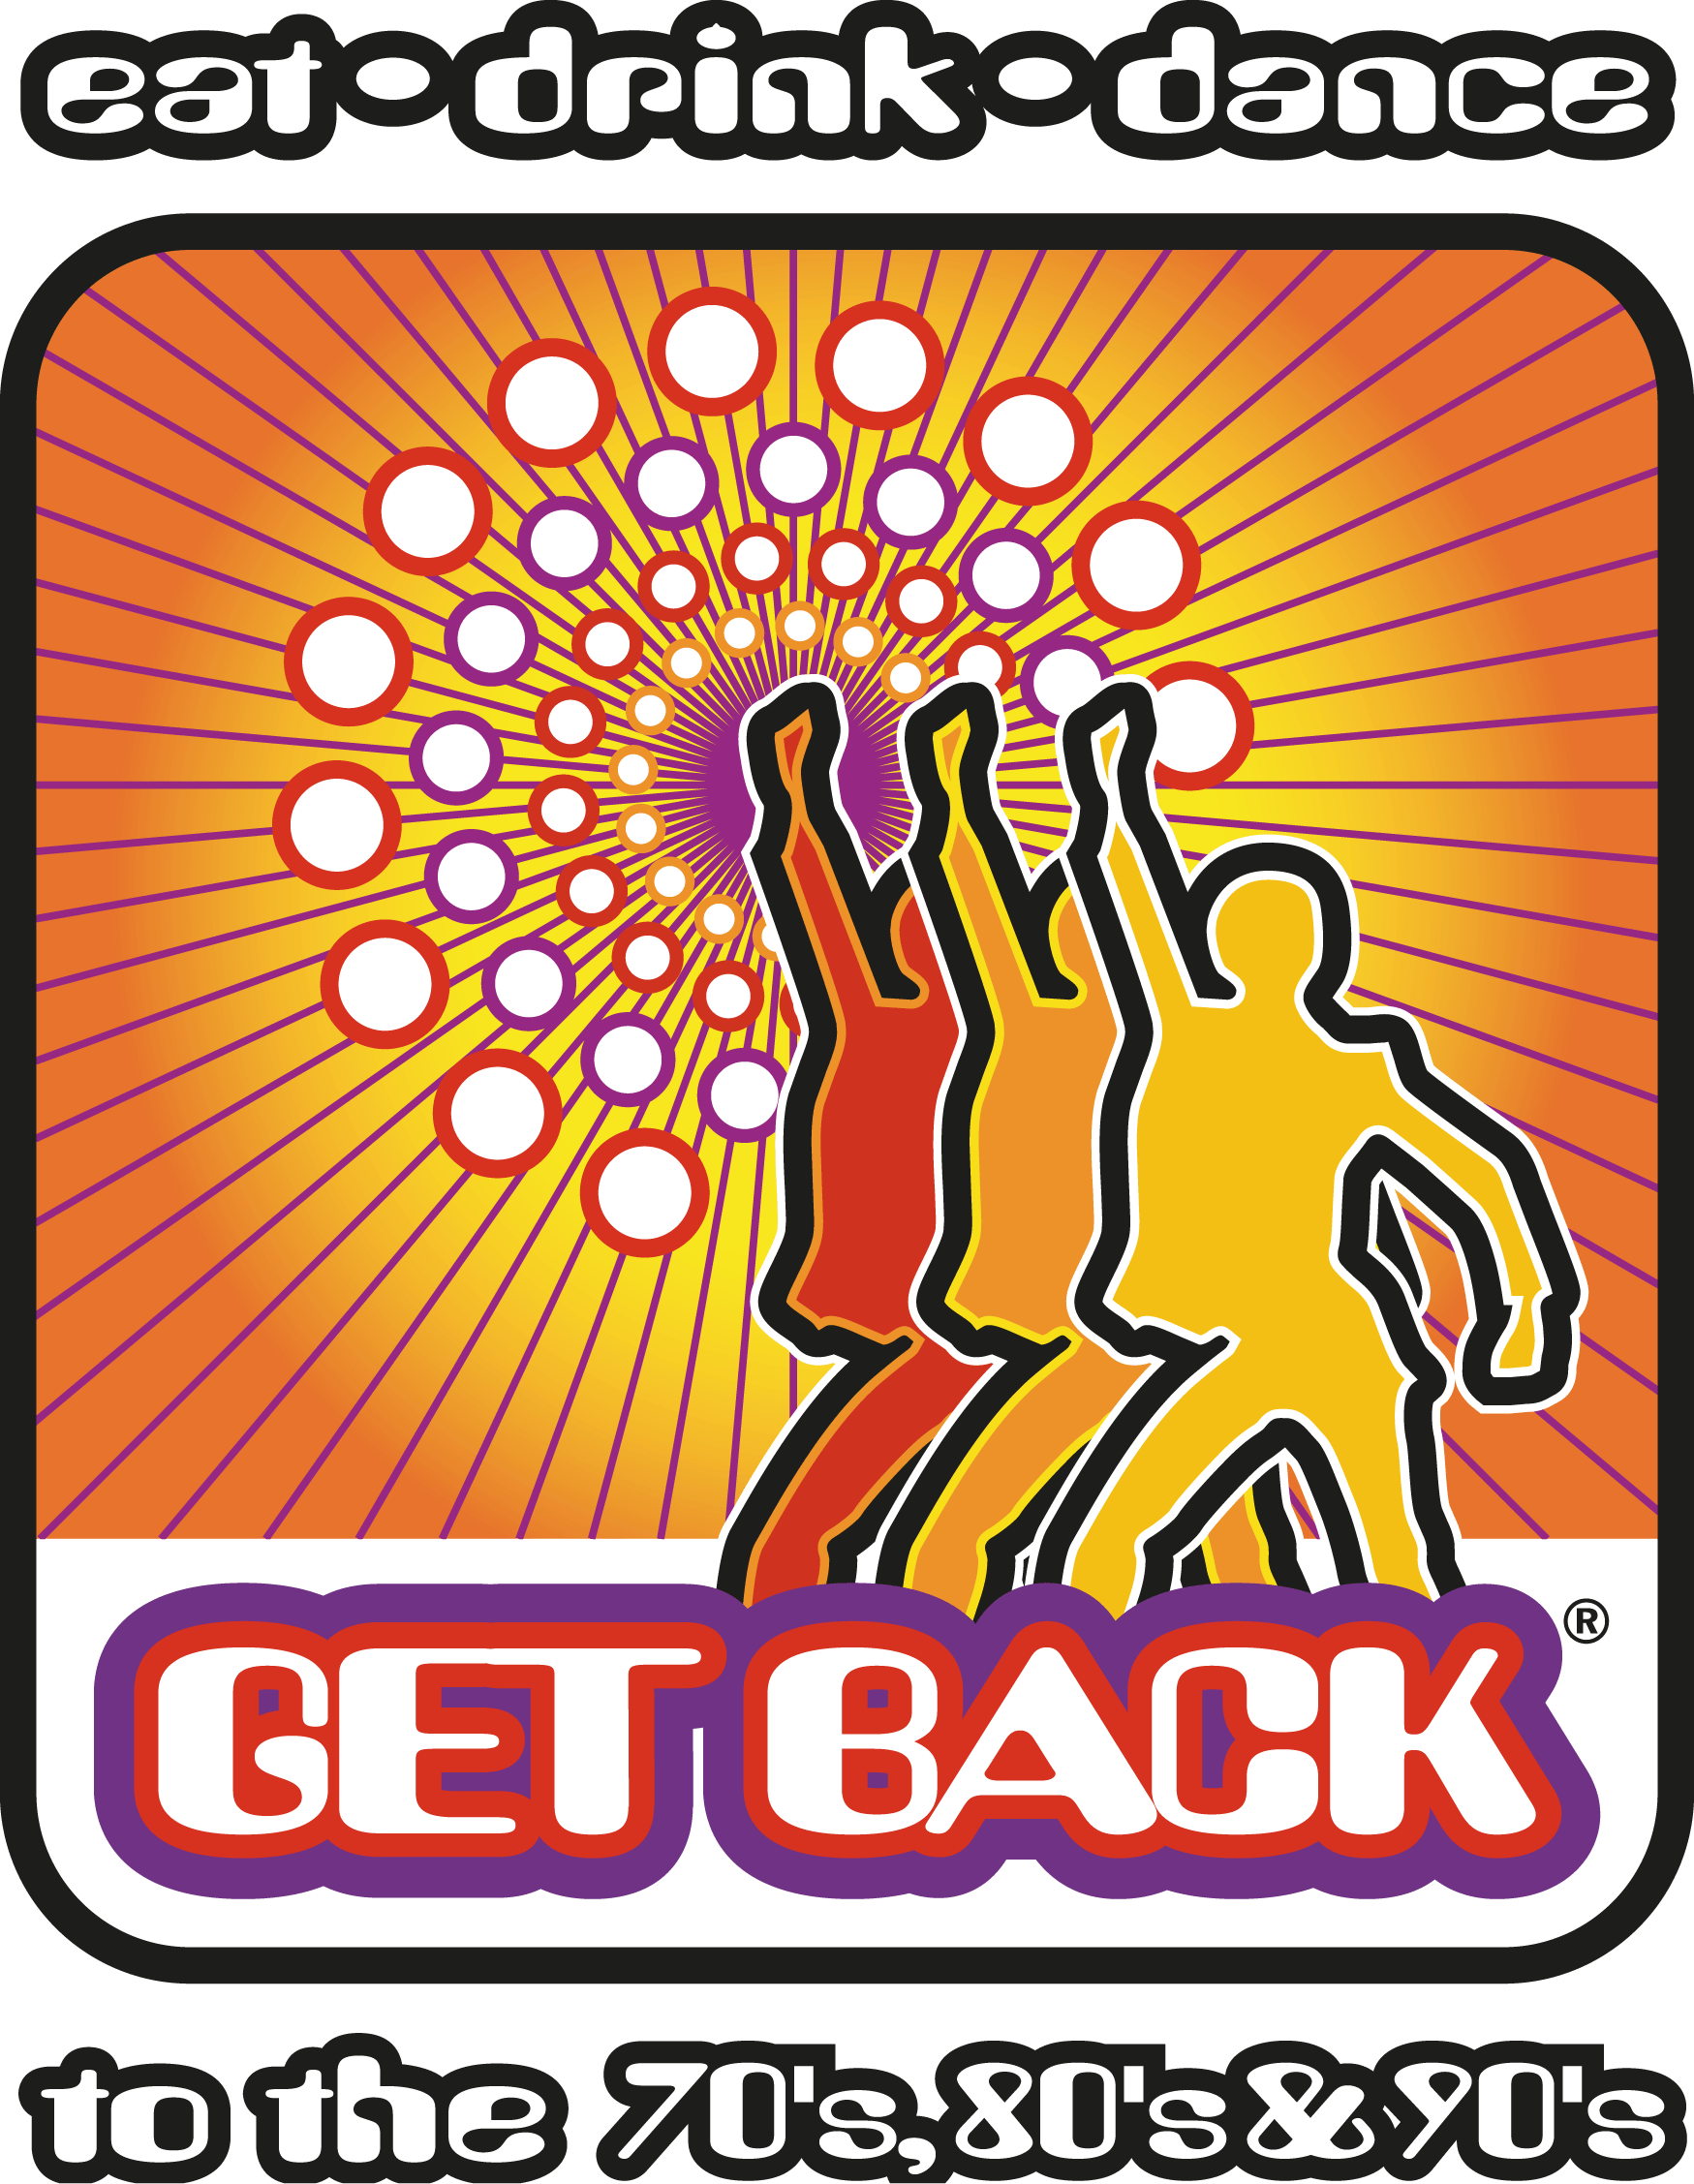 cms/images/customers/Logo_GetBack.png